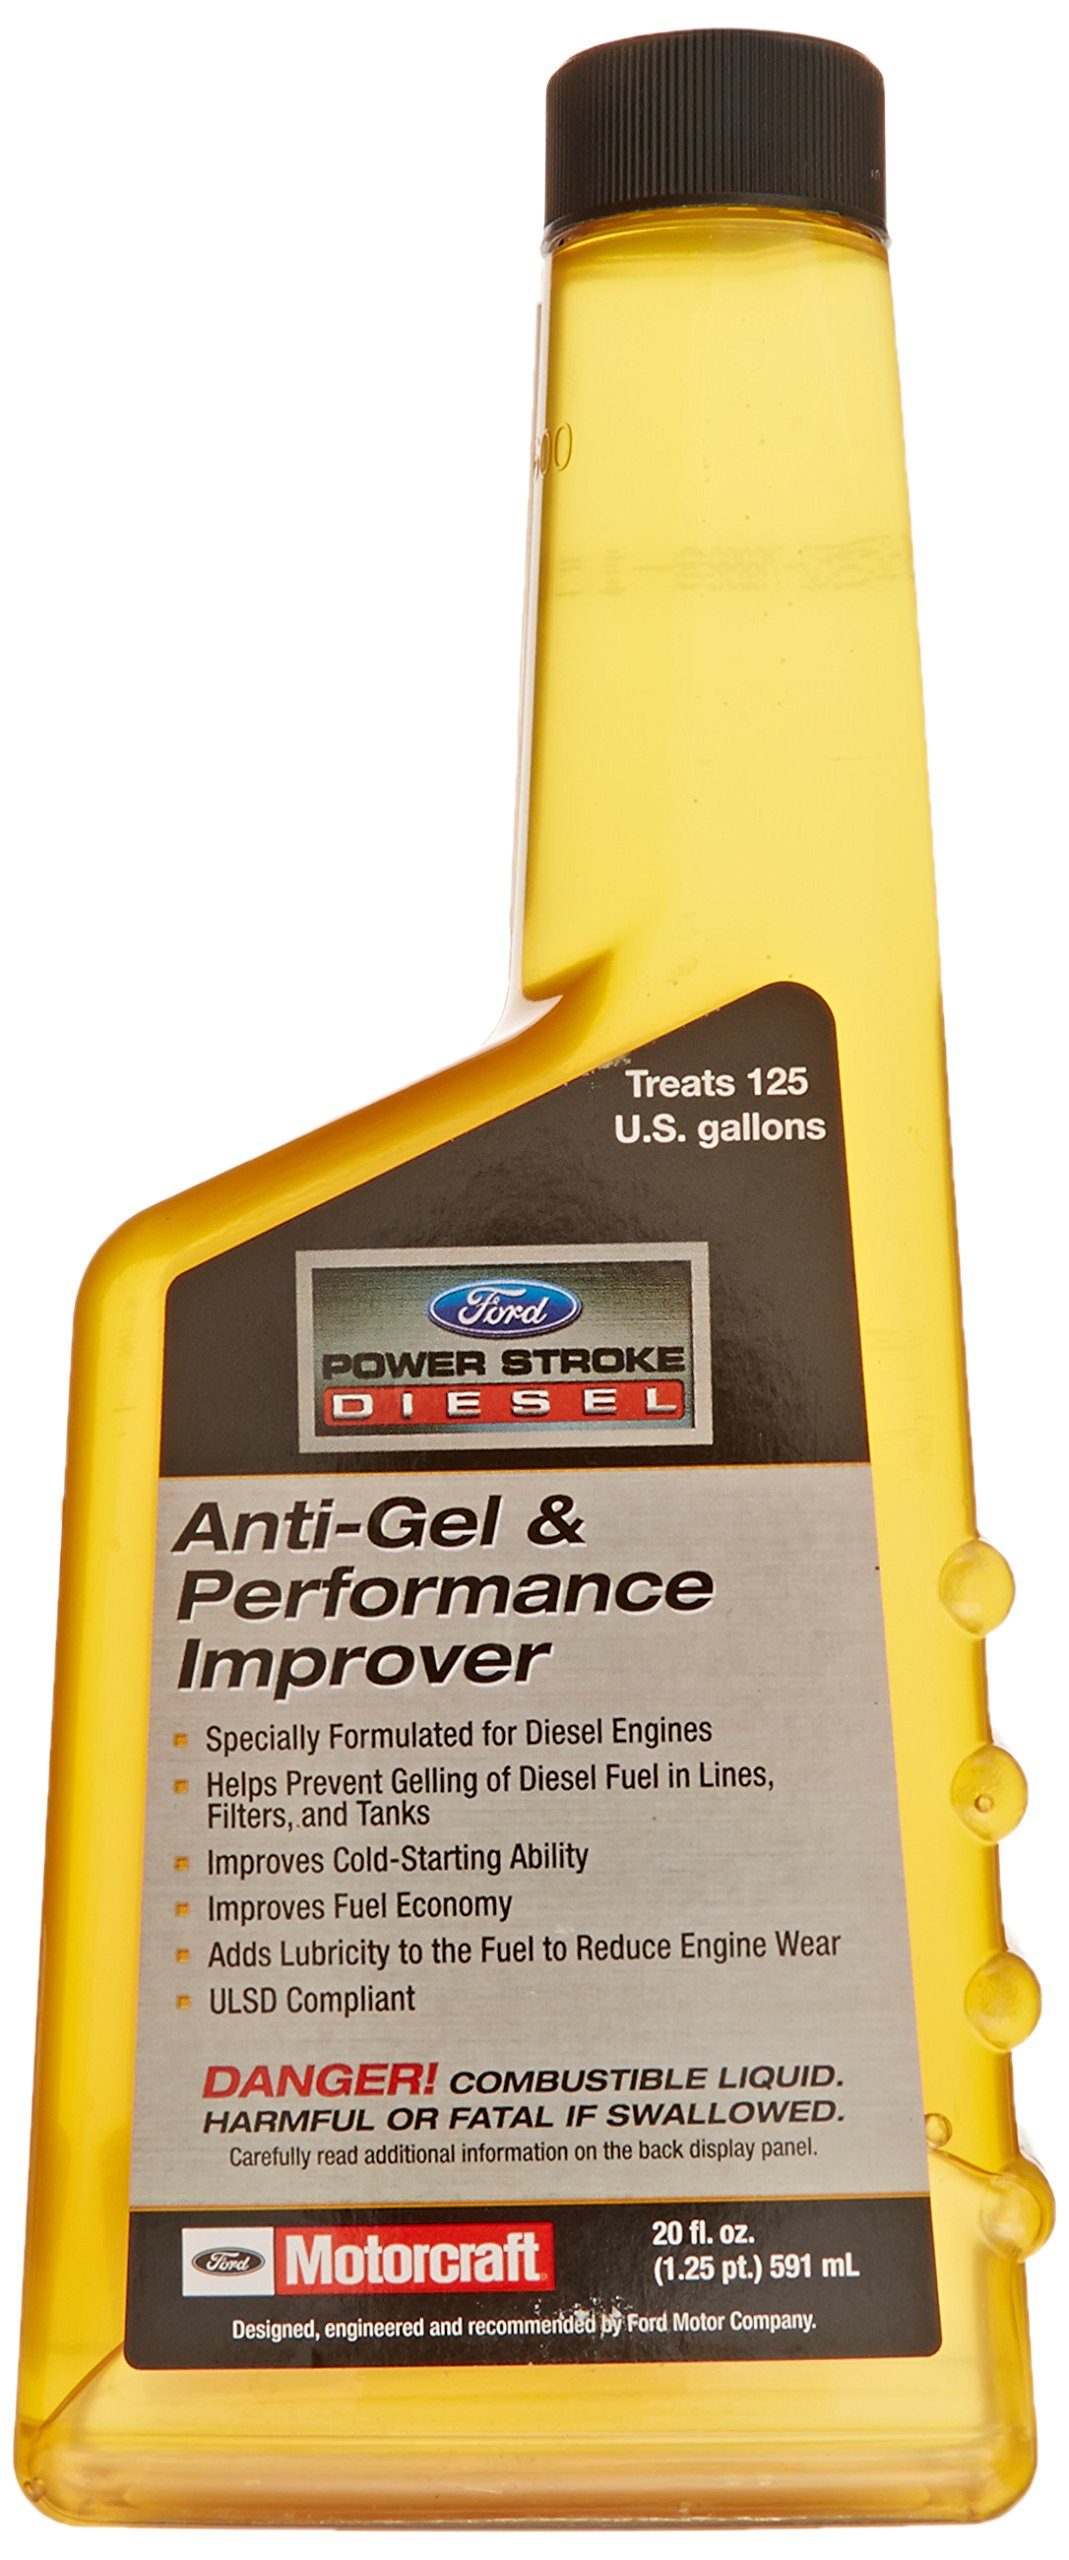 Genuine Ford Fluid PM-23-A ULSD Compliant Anti-Gel and Performance Improver - 20 oz.